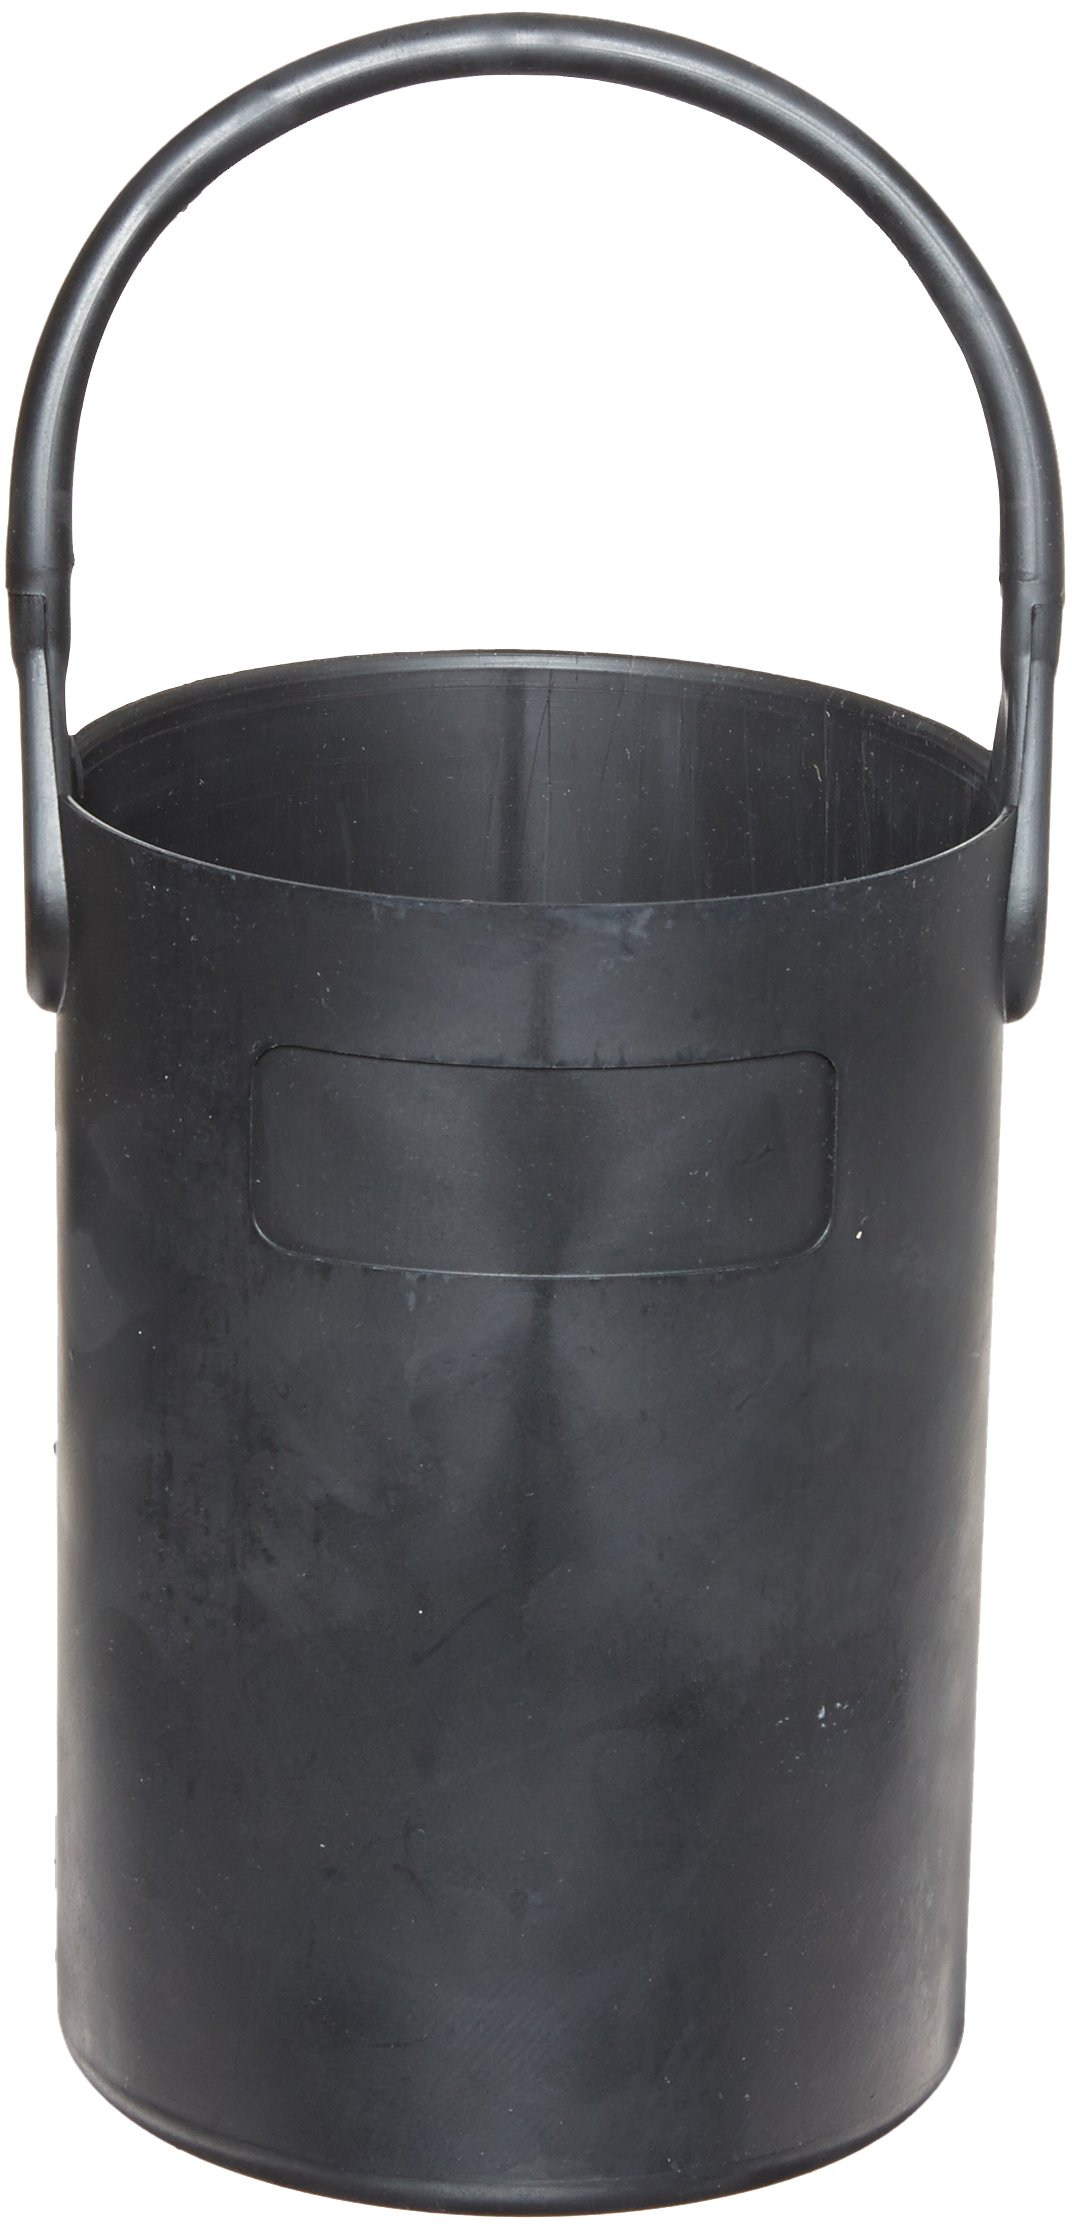 Eagle Thermoplastics B-102 Thermoplastic Safety Bottle Tote Carrier, Black, 16'' Height